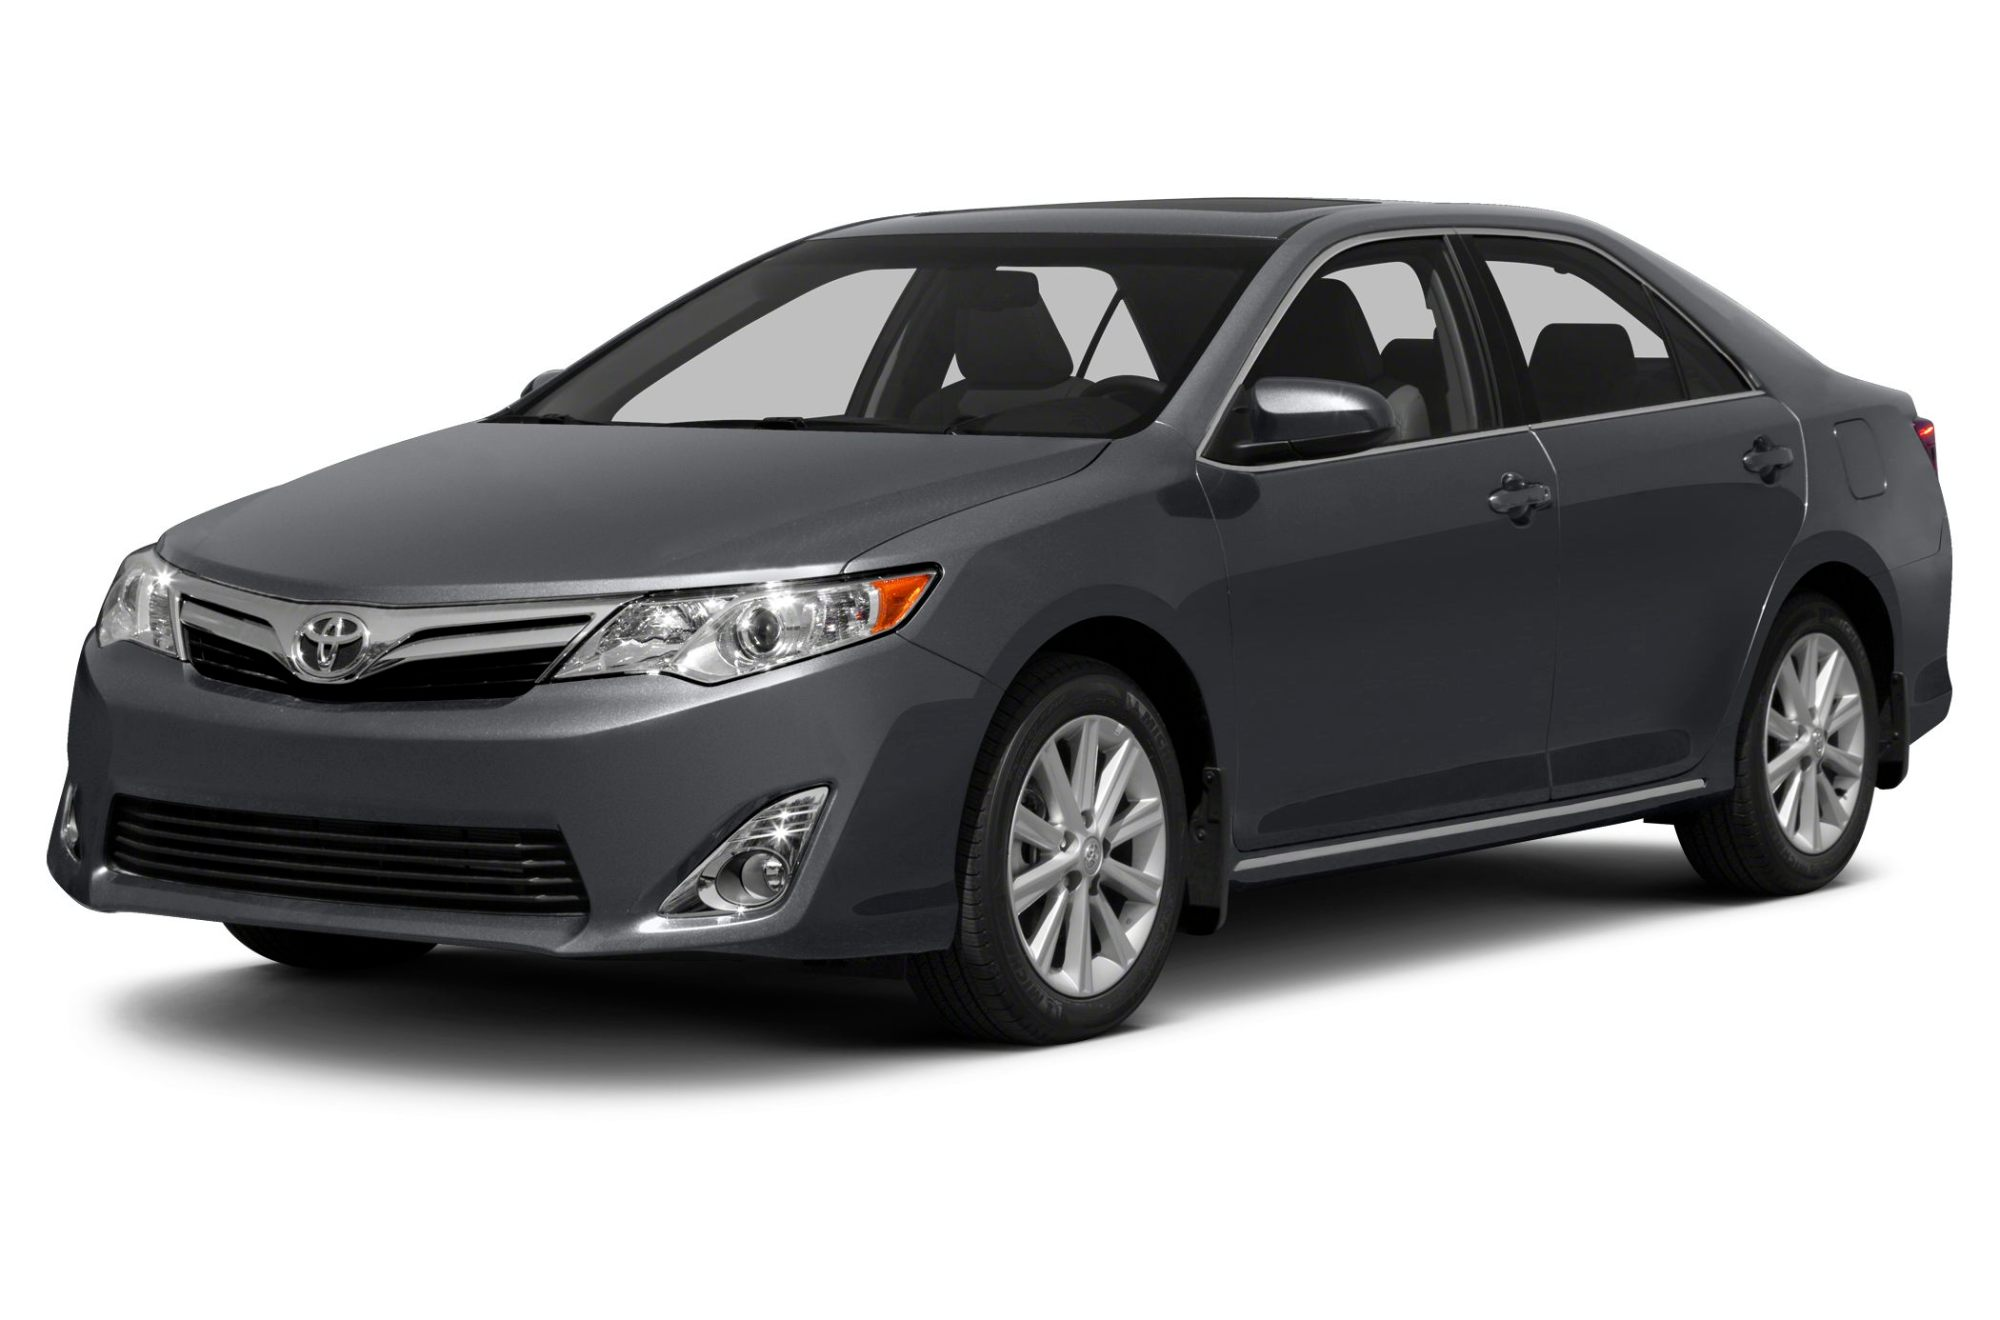 hight resolution of 02 camry cruise control module location